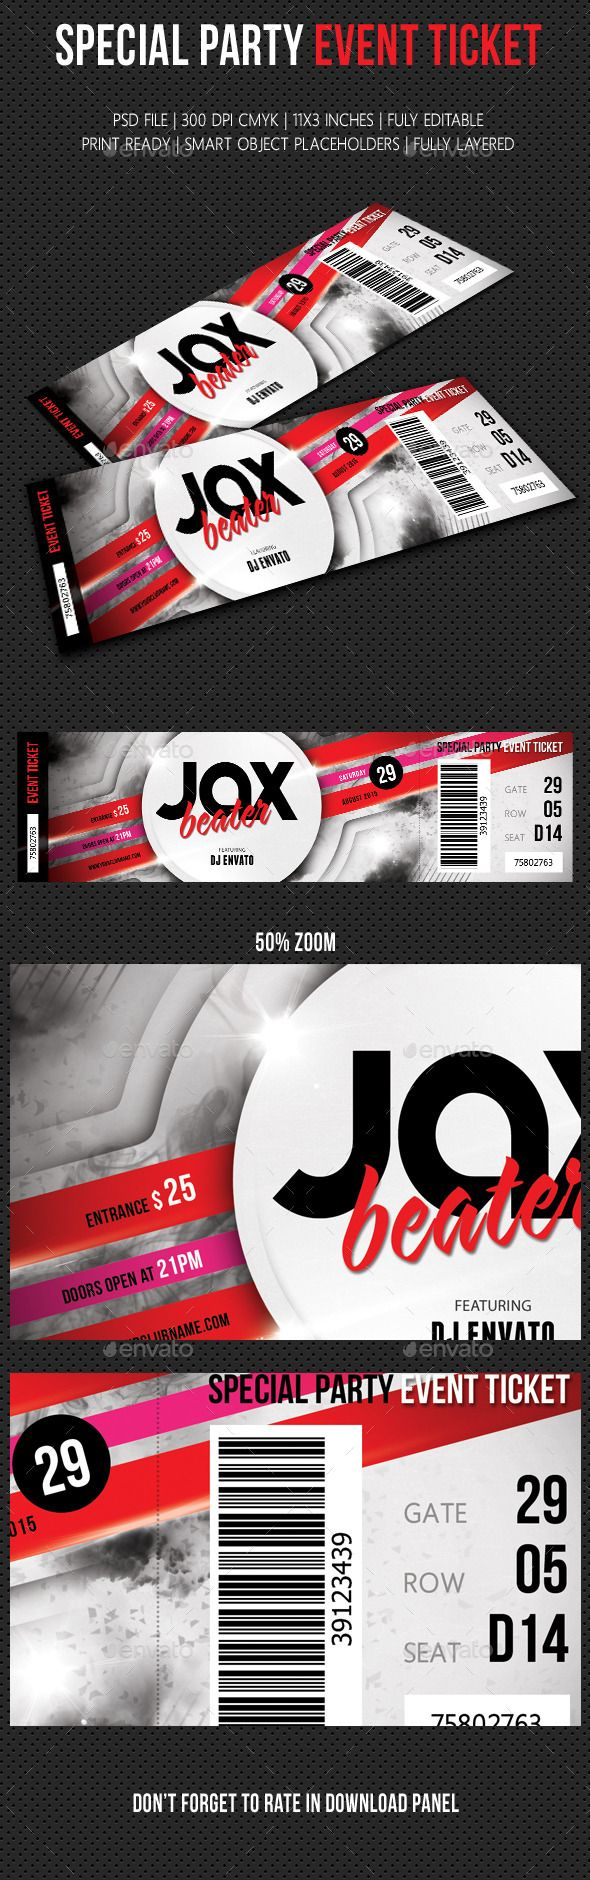 Special Party Event Ticket Template #design Download: http://graphicriver.net/item/special-party-event-ticket-v04/12426783?ref=ksioks